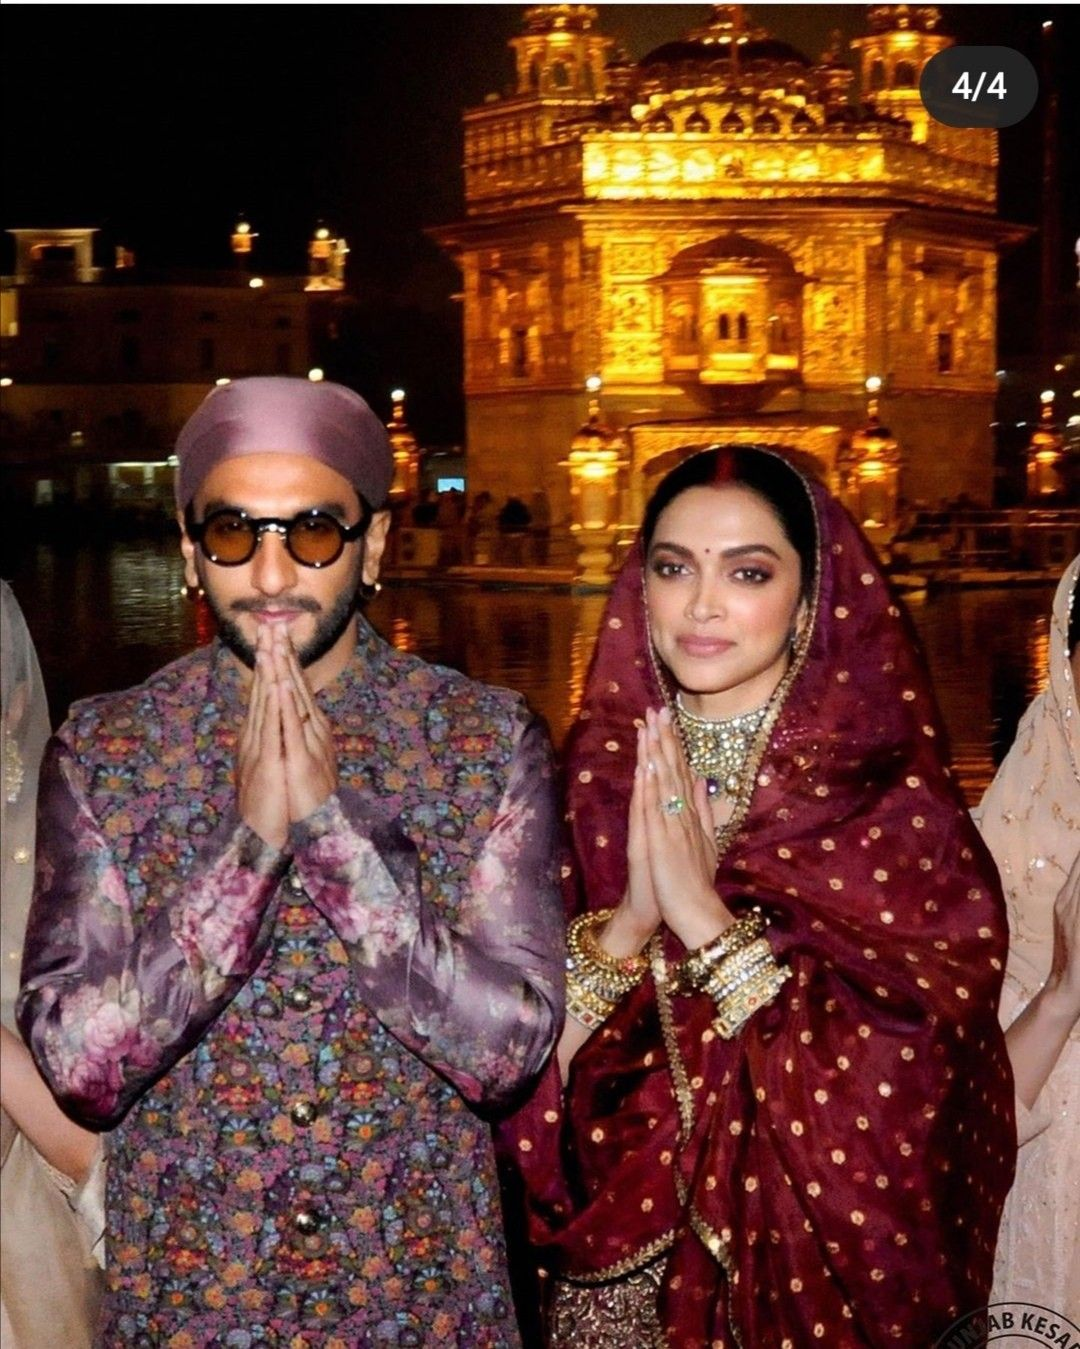 Deepika Padukone And Ranveer Singh At The Golden Temple For Their First Wedding Anniversary In 2020 Traditional Outfits Fashion Deepika Padukone